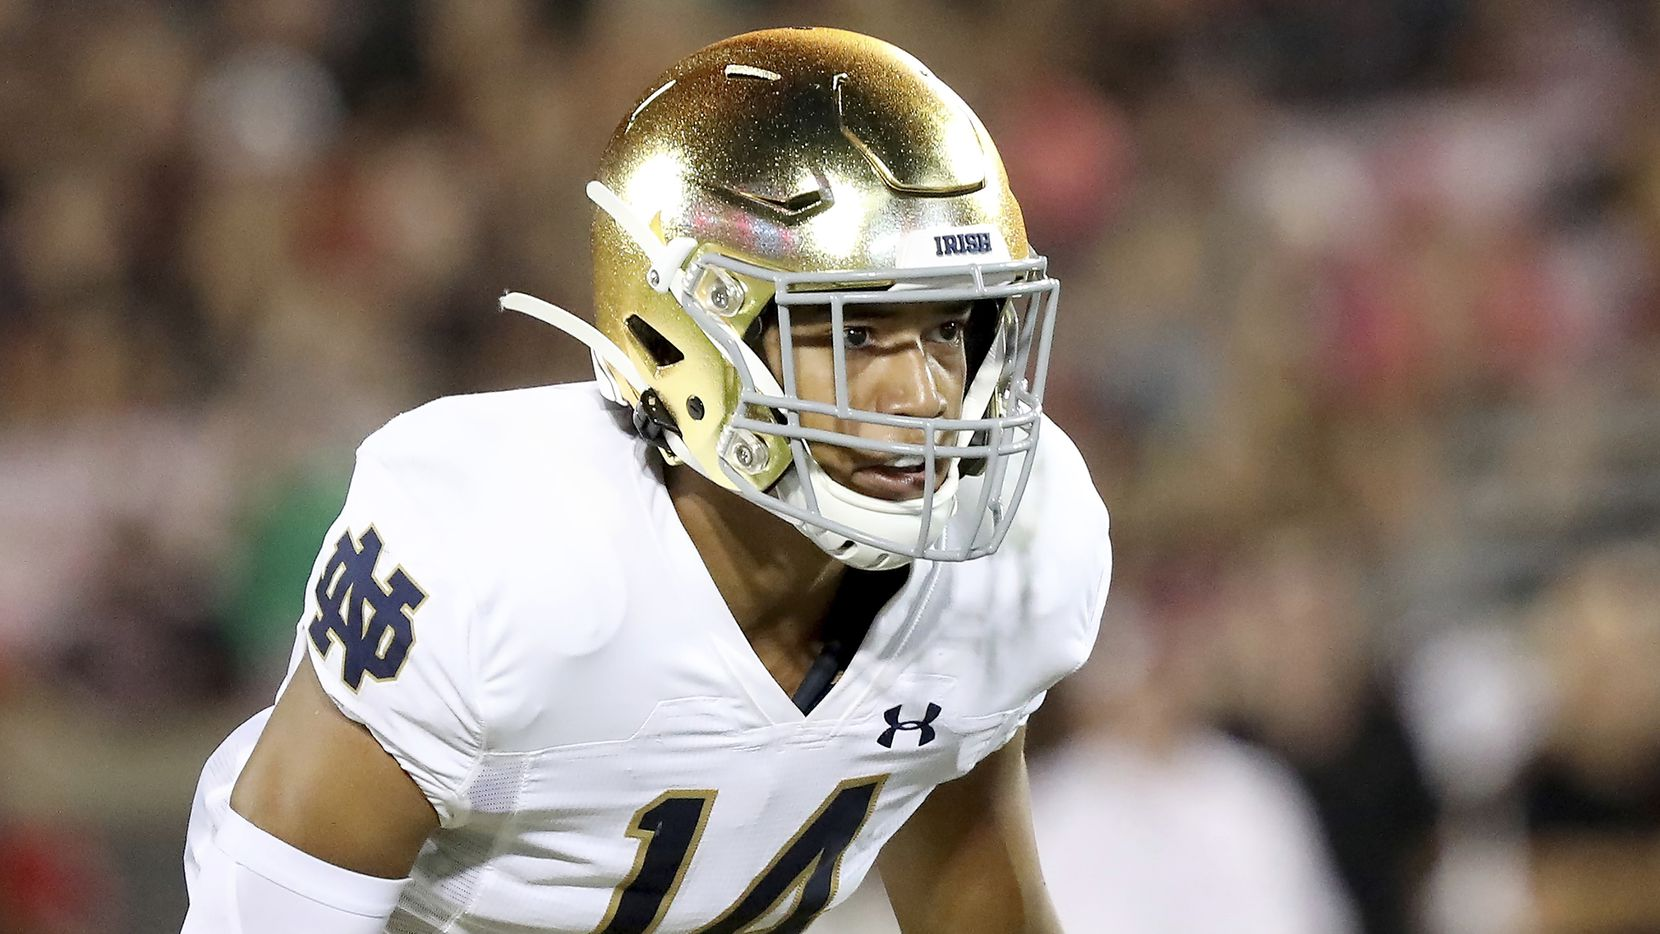 FILE - Notre Dame defensive back Kyle Hamilton is shown during an NCAA football game on Monday, Sept. 2, 2019, in Louisville, Ky.